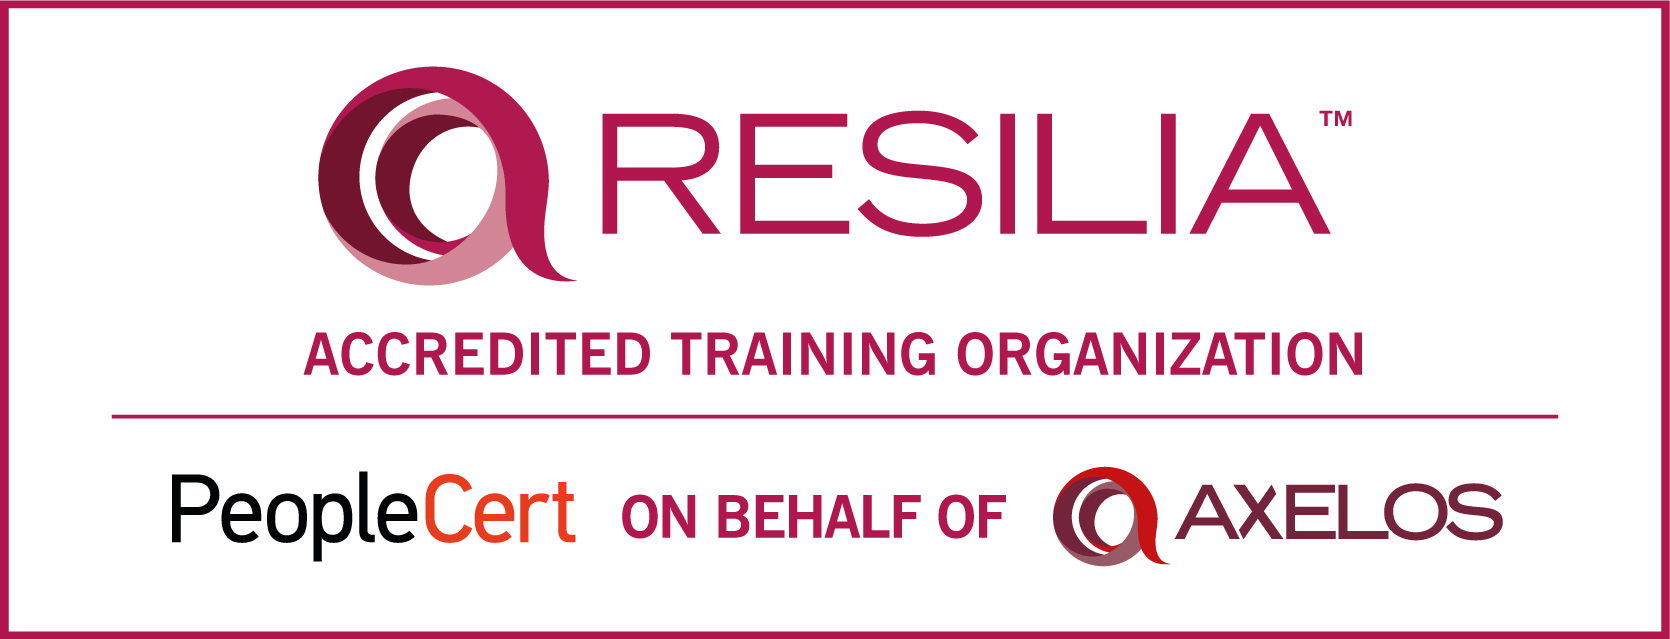 Resilia Accredited Training Organization